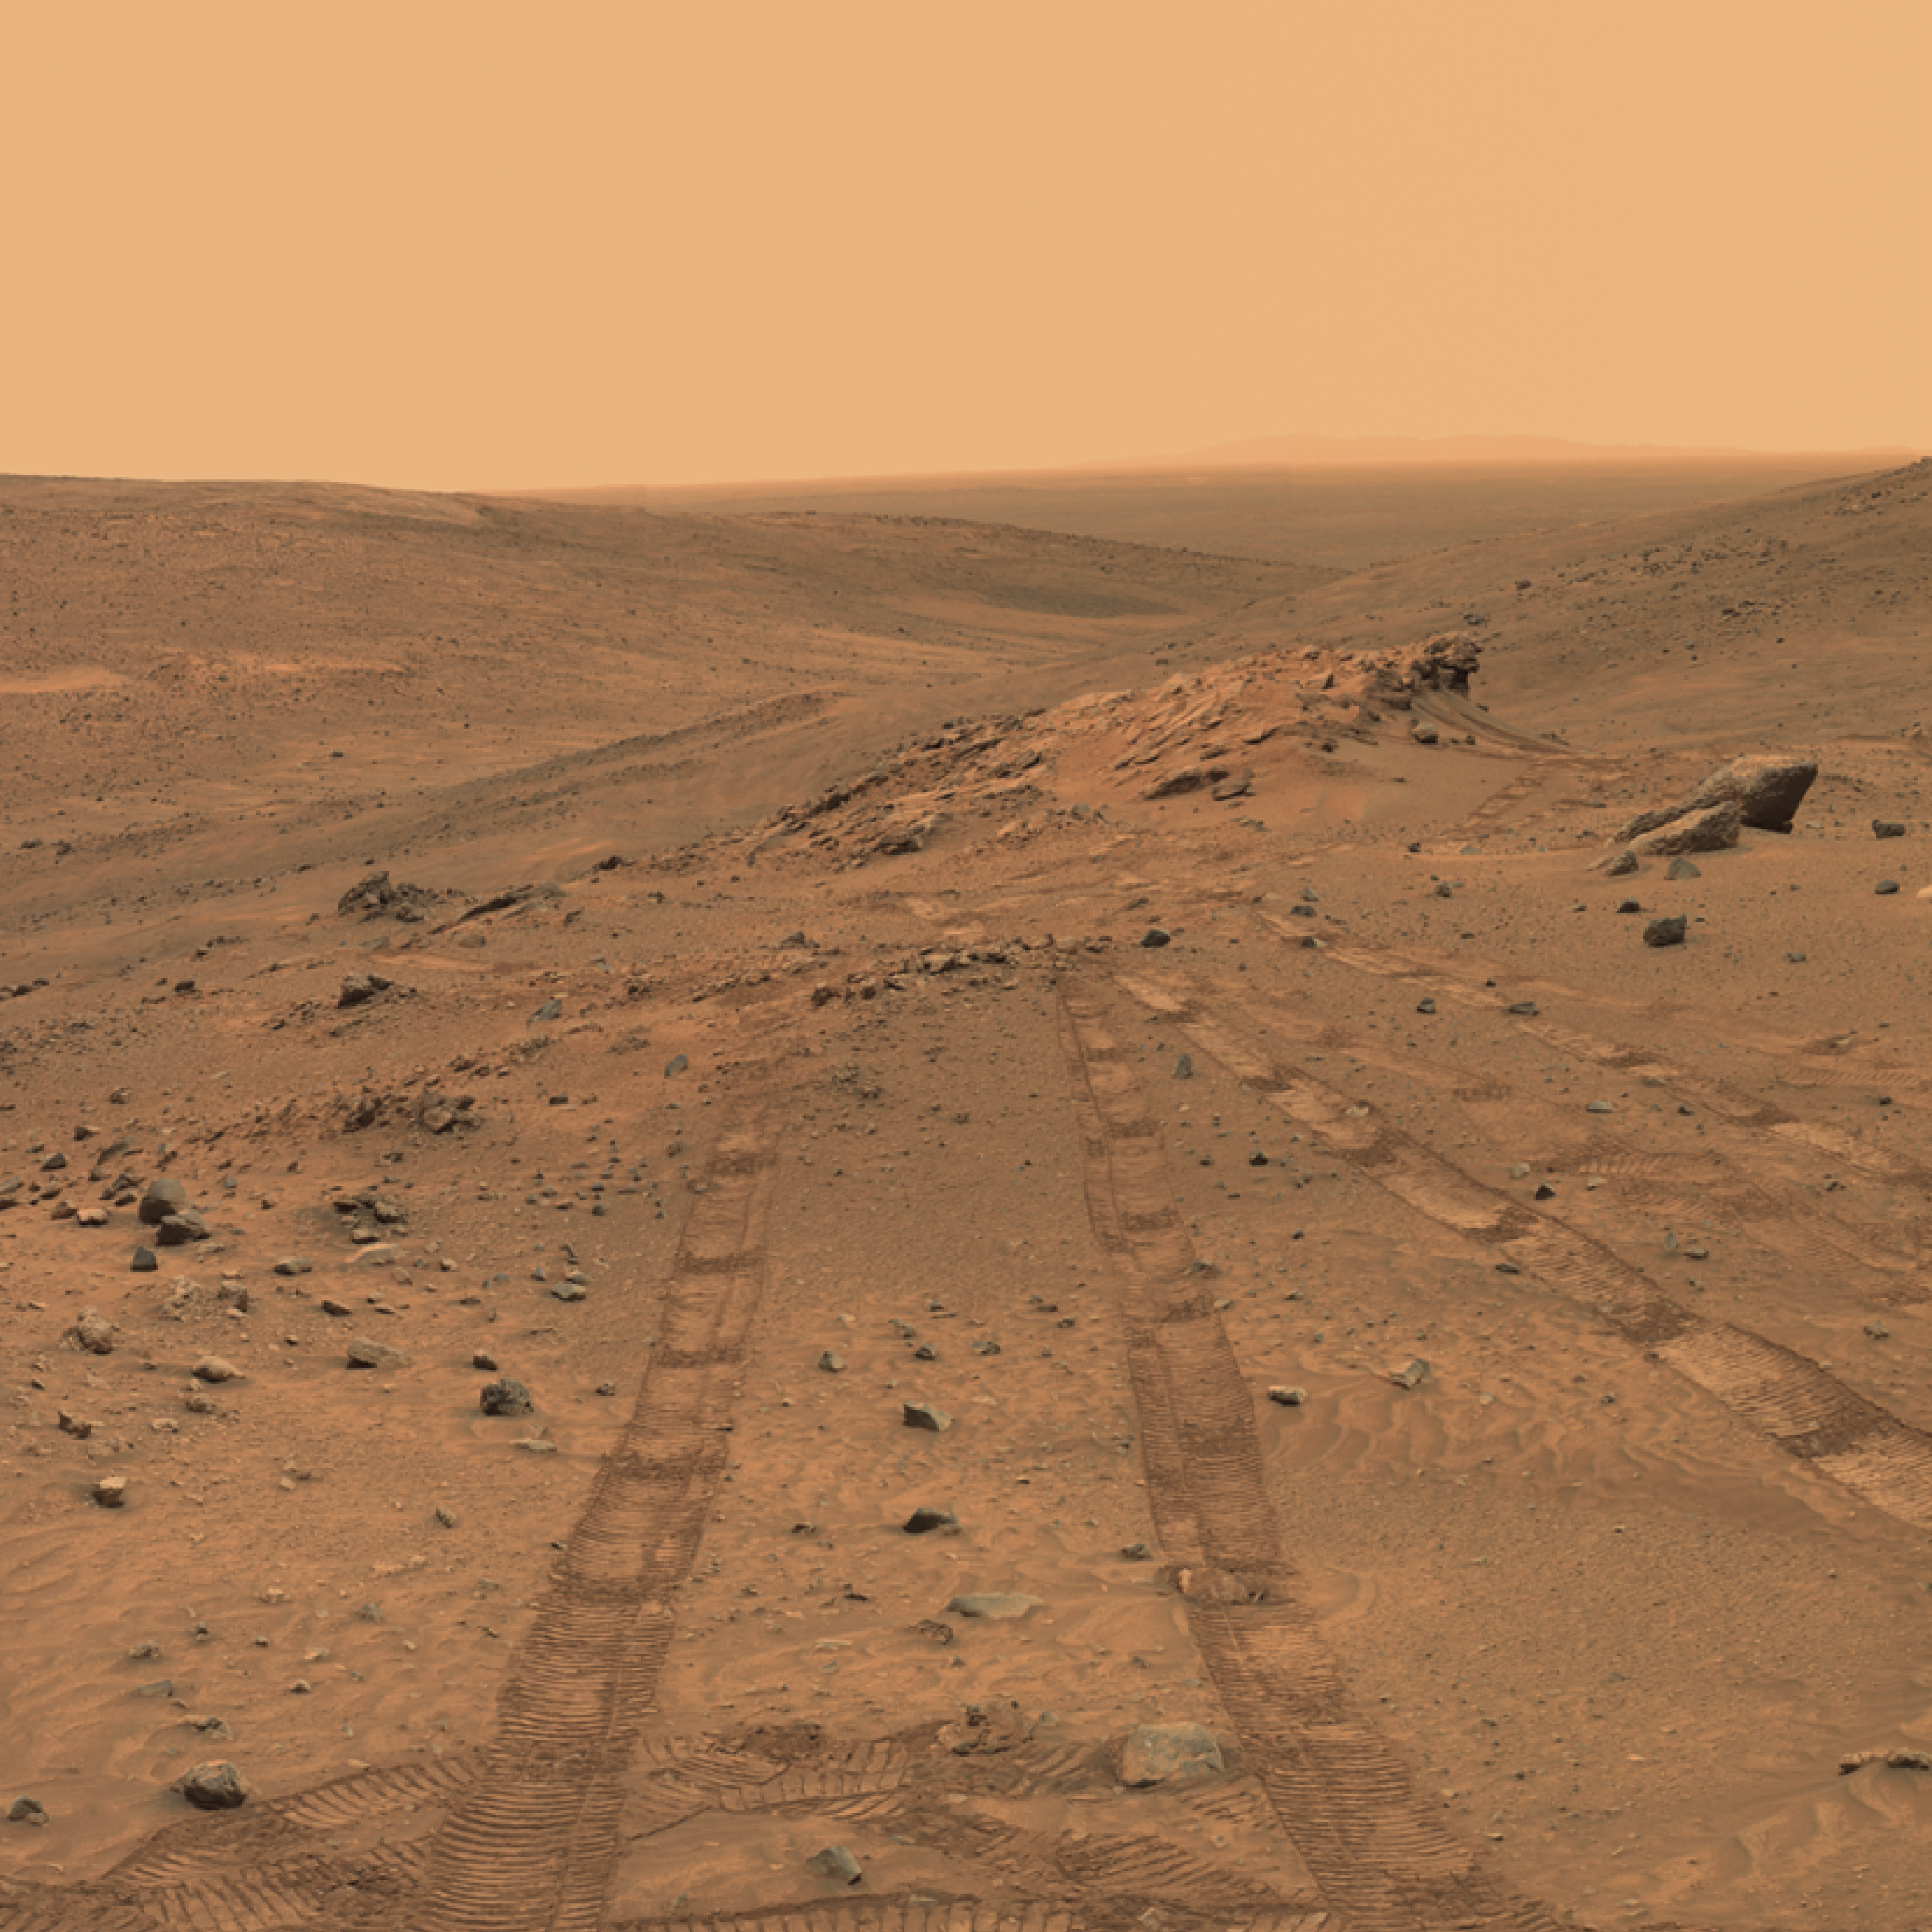 usa today on planet mars - photo #42